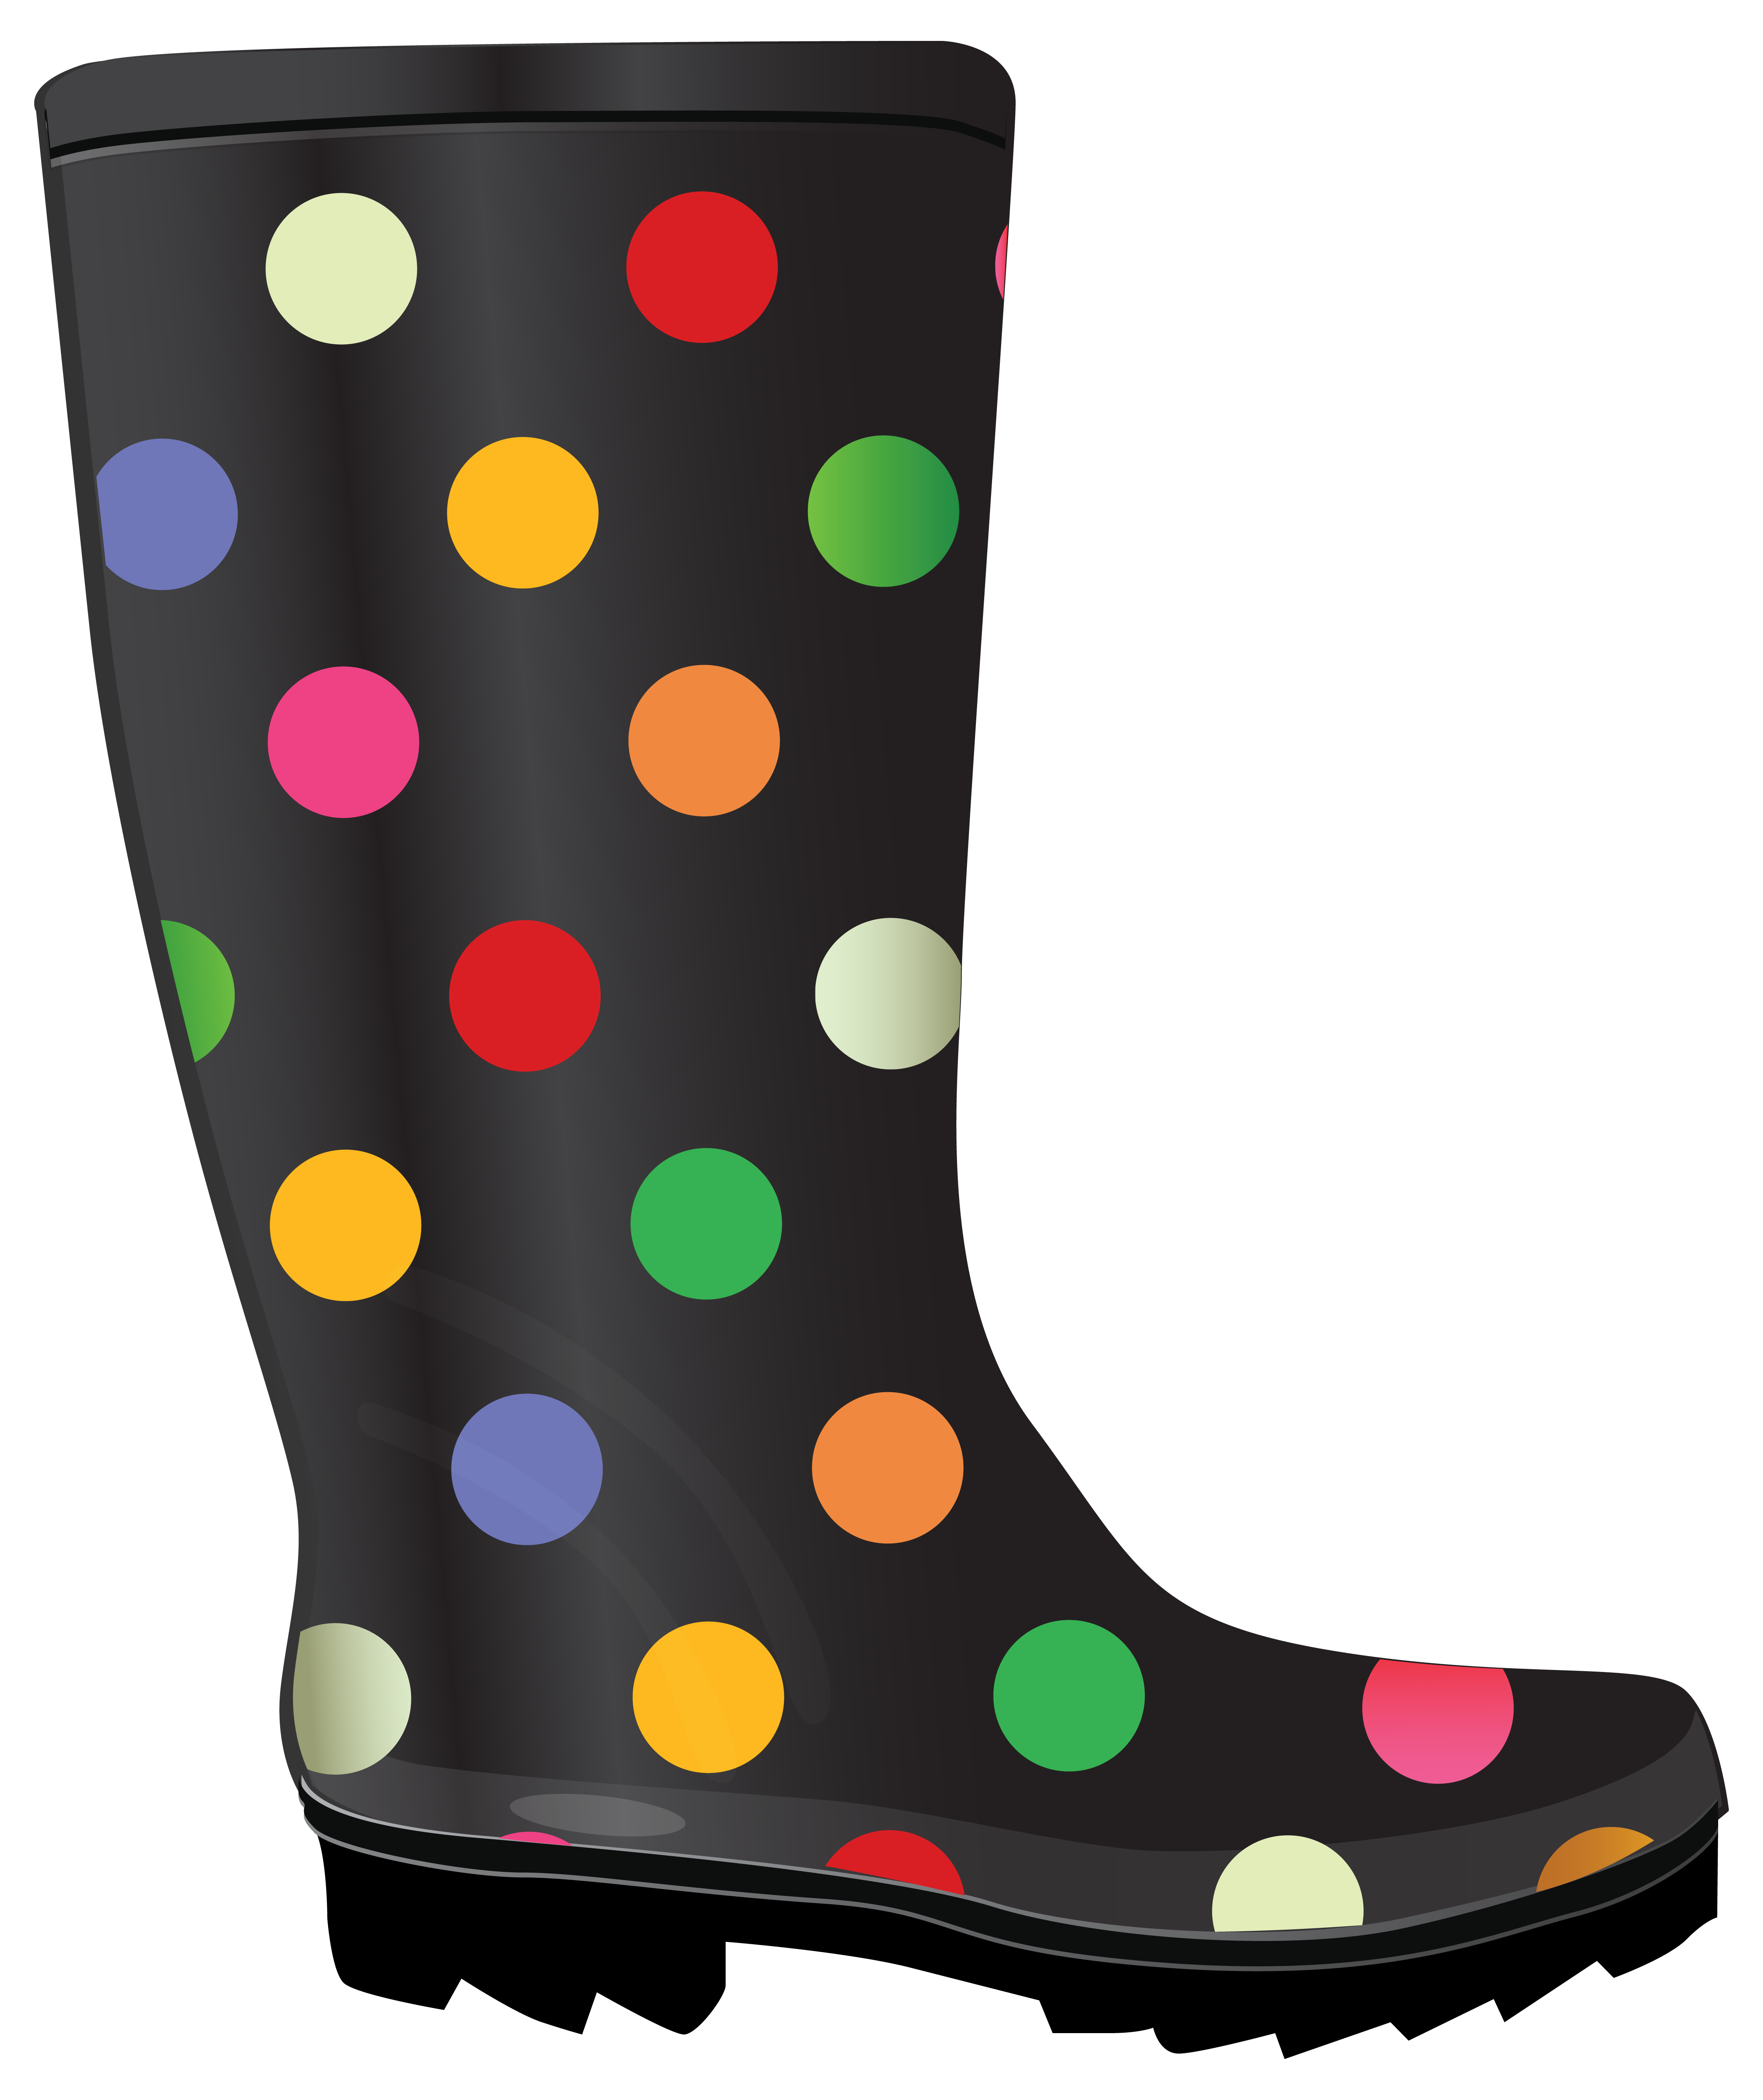 Heaven clipart happy. Dotted rubber boots rain